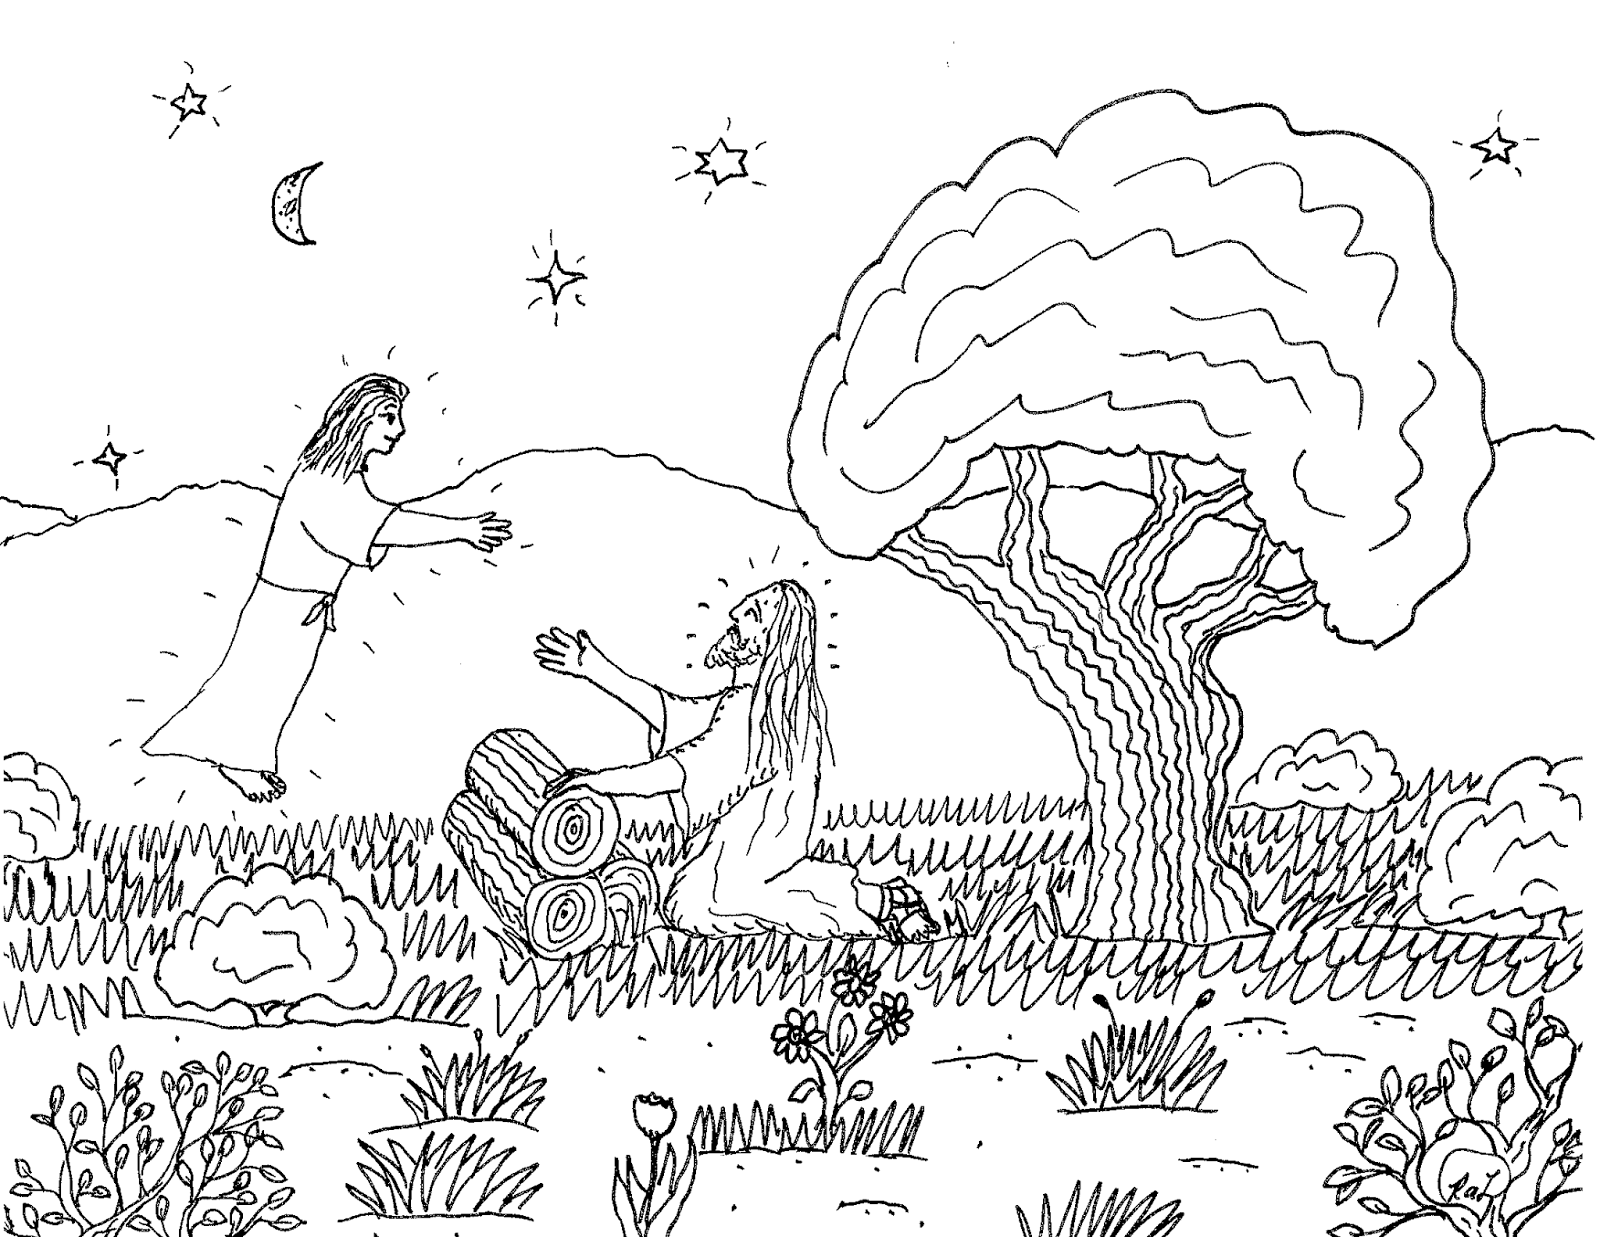 jesus in the garden of gethsemane coloring page robin39s great coloring pages jesus in garden of gethsemane of page coloring the jesus in garden gethsemane